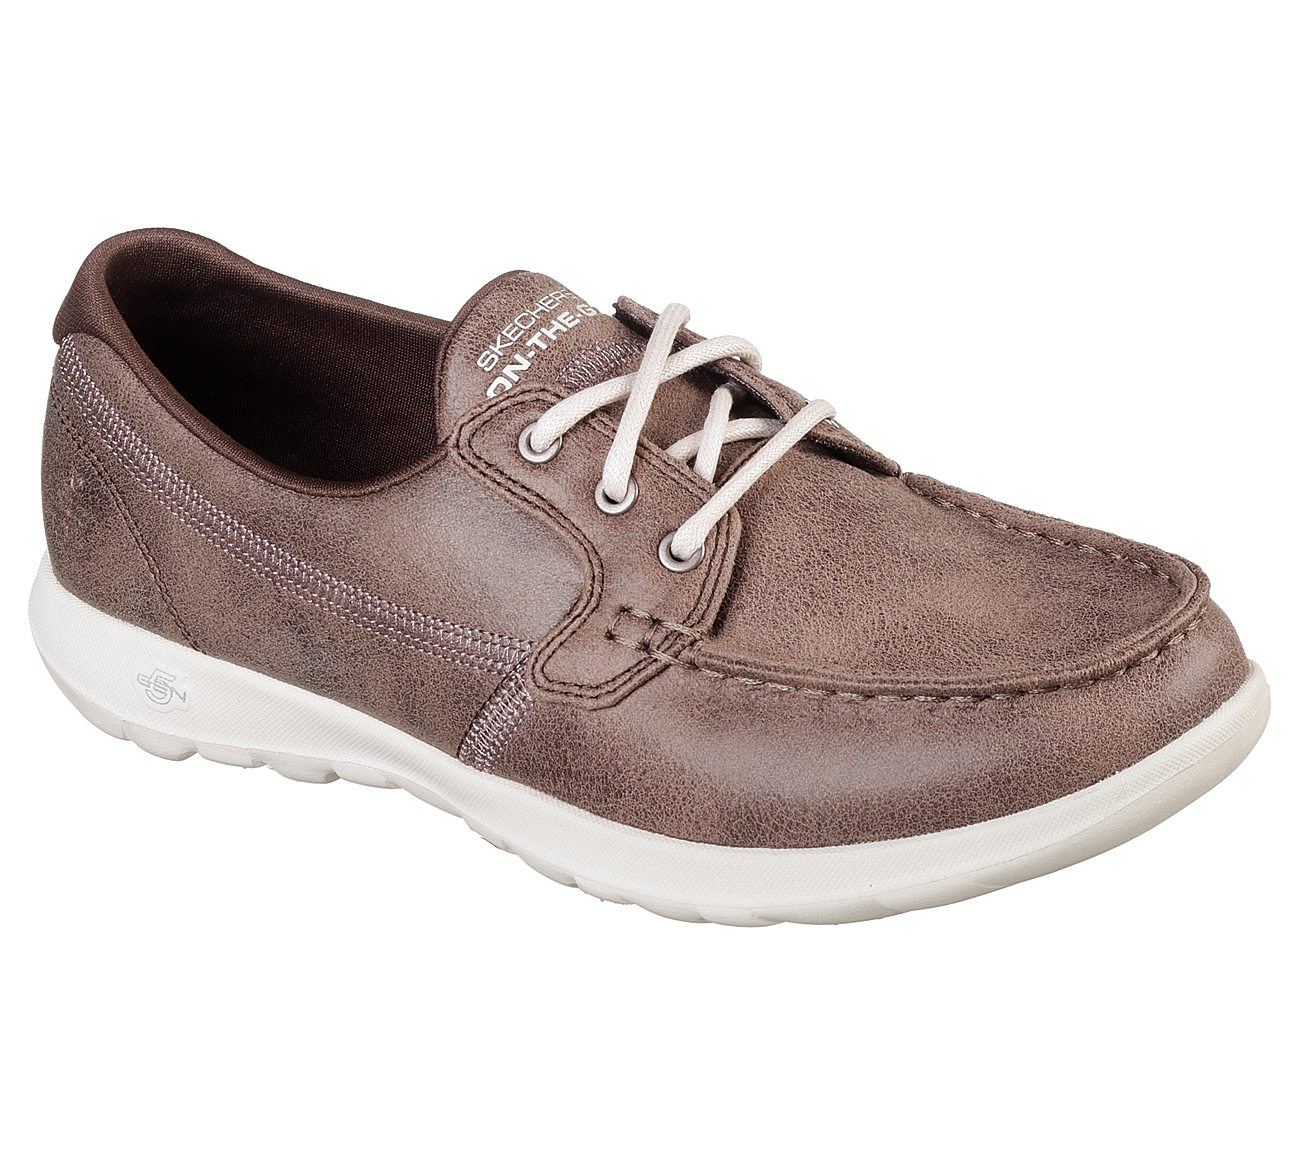 Skechers GOwalk Lite - Mar Vista